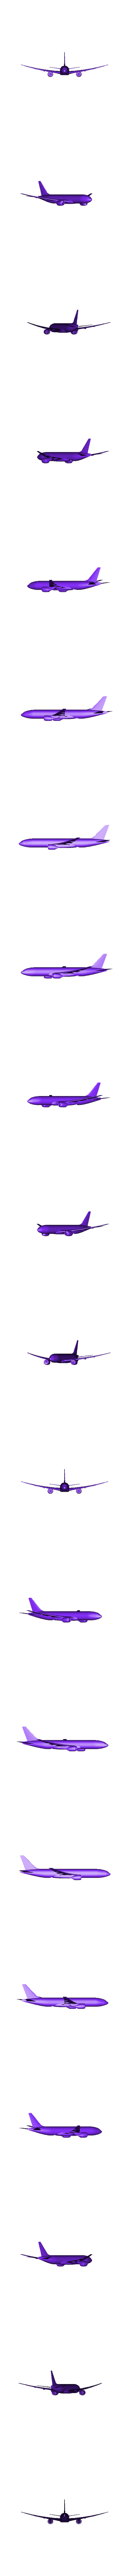 BOEING 777-01.STL Download STL file BOEING - ANDROID - CELL PHONE AND TABLET HOLDER • 3D printing model, Trikonics